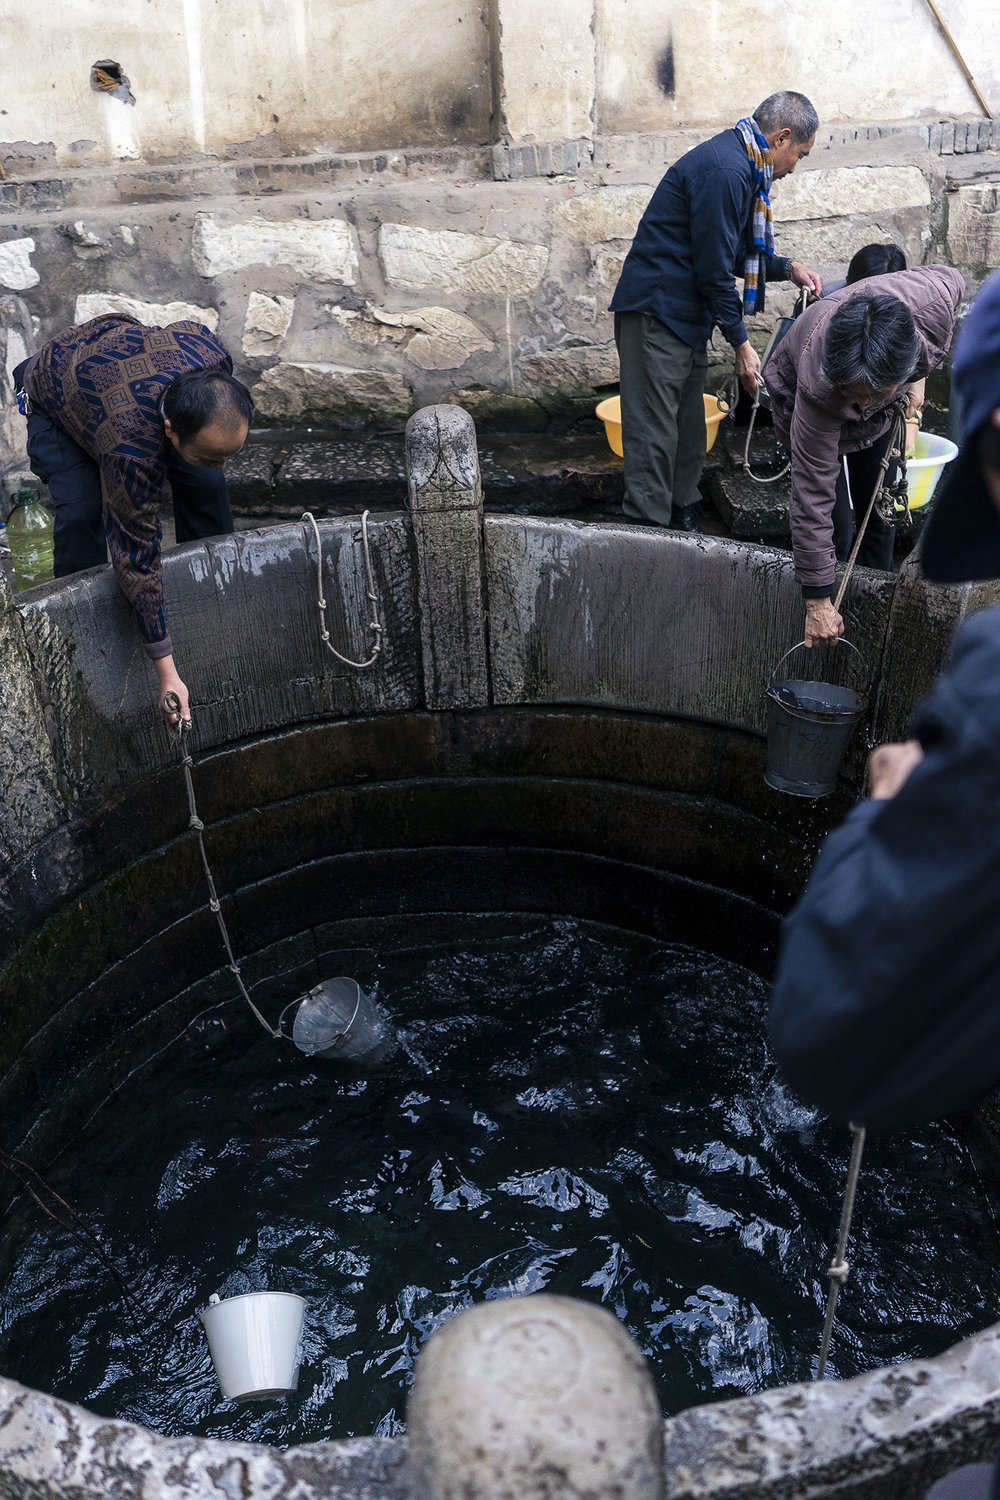 daban_water_well_jianshui_china